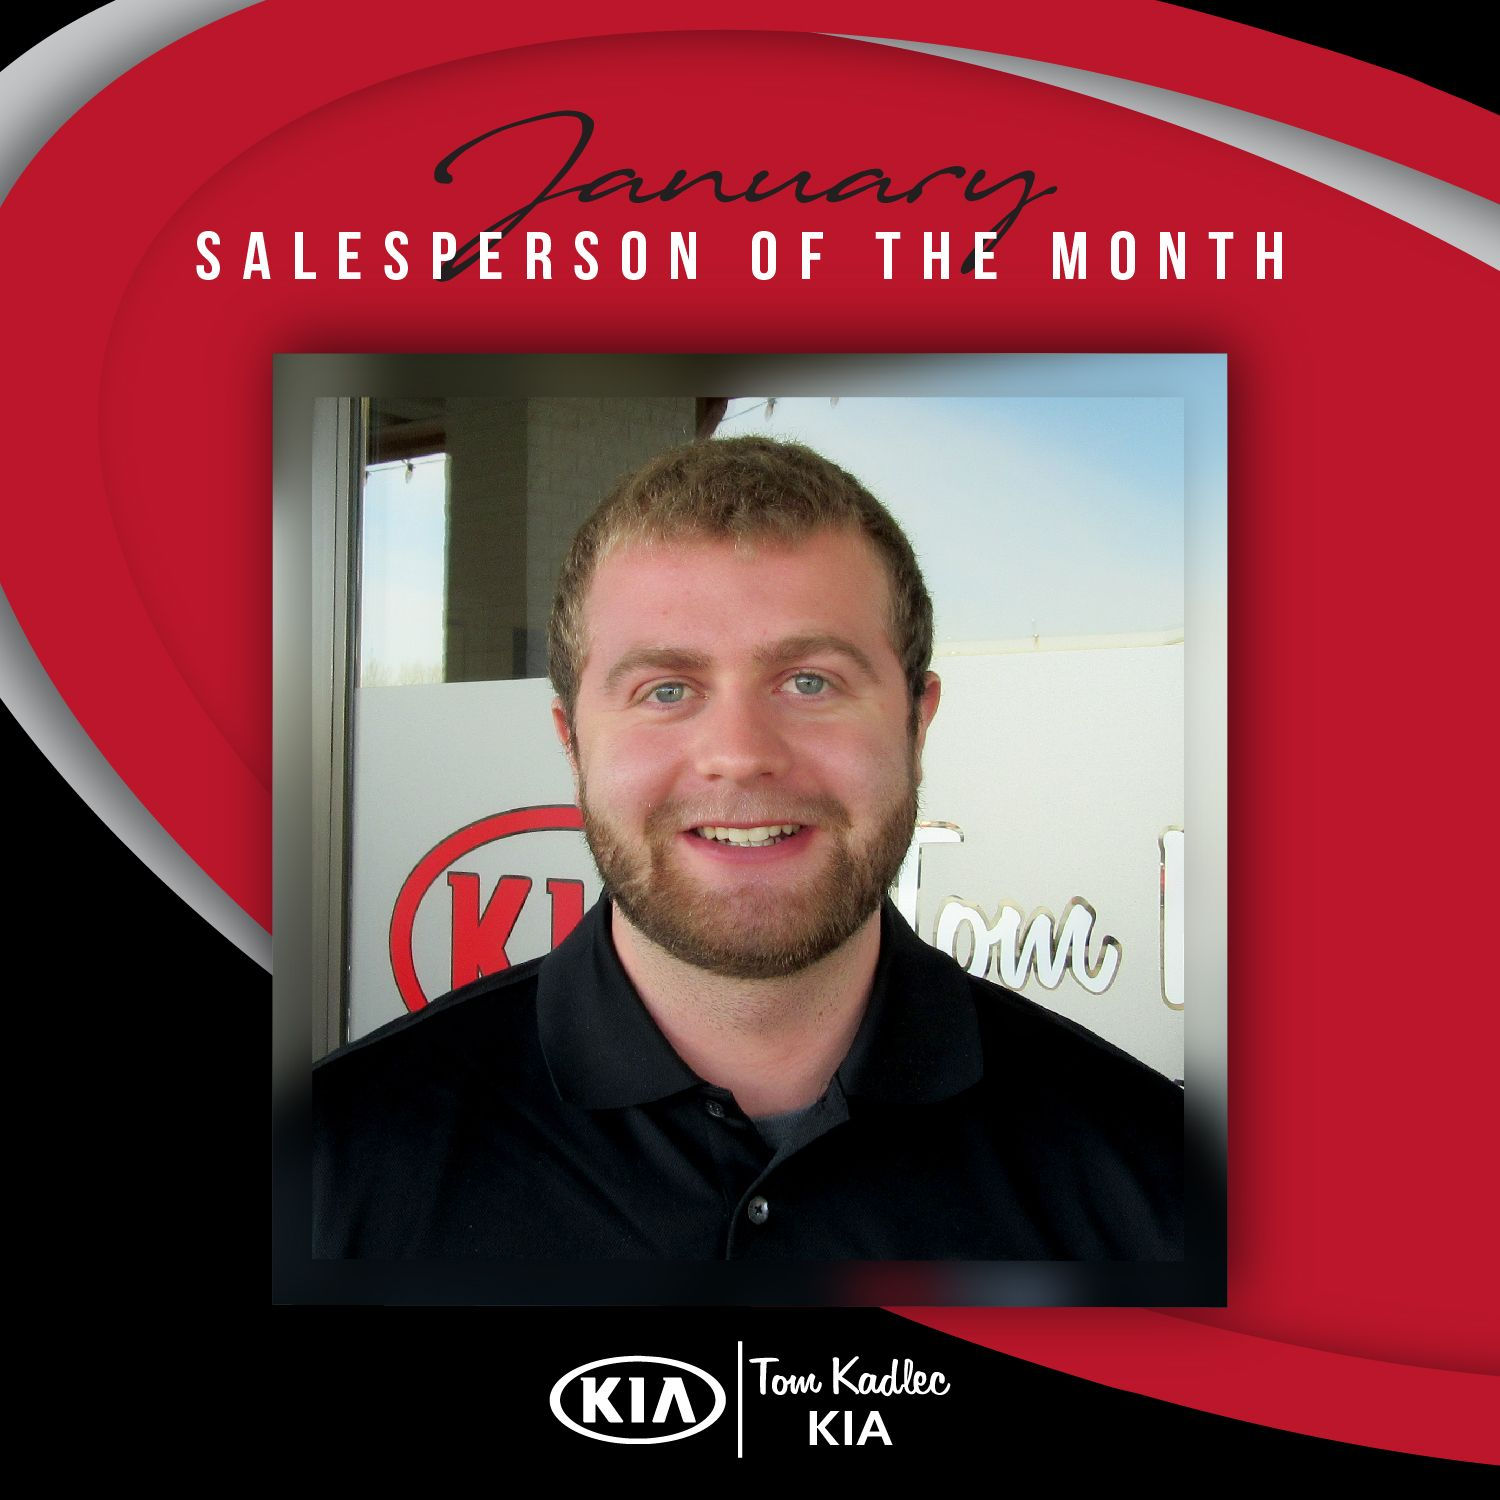 Jan Salesperson Of The Month Months Salesperson Greatful